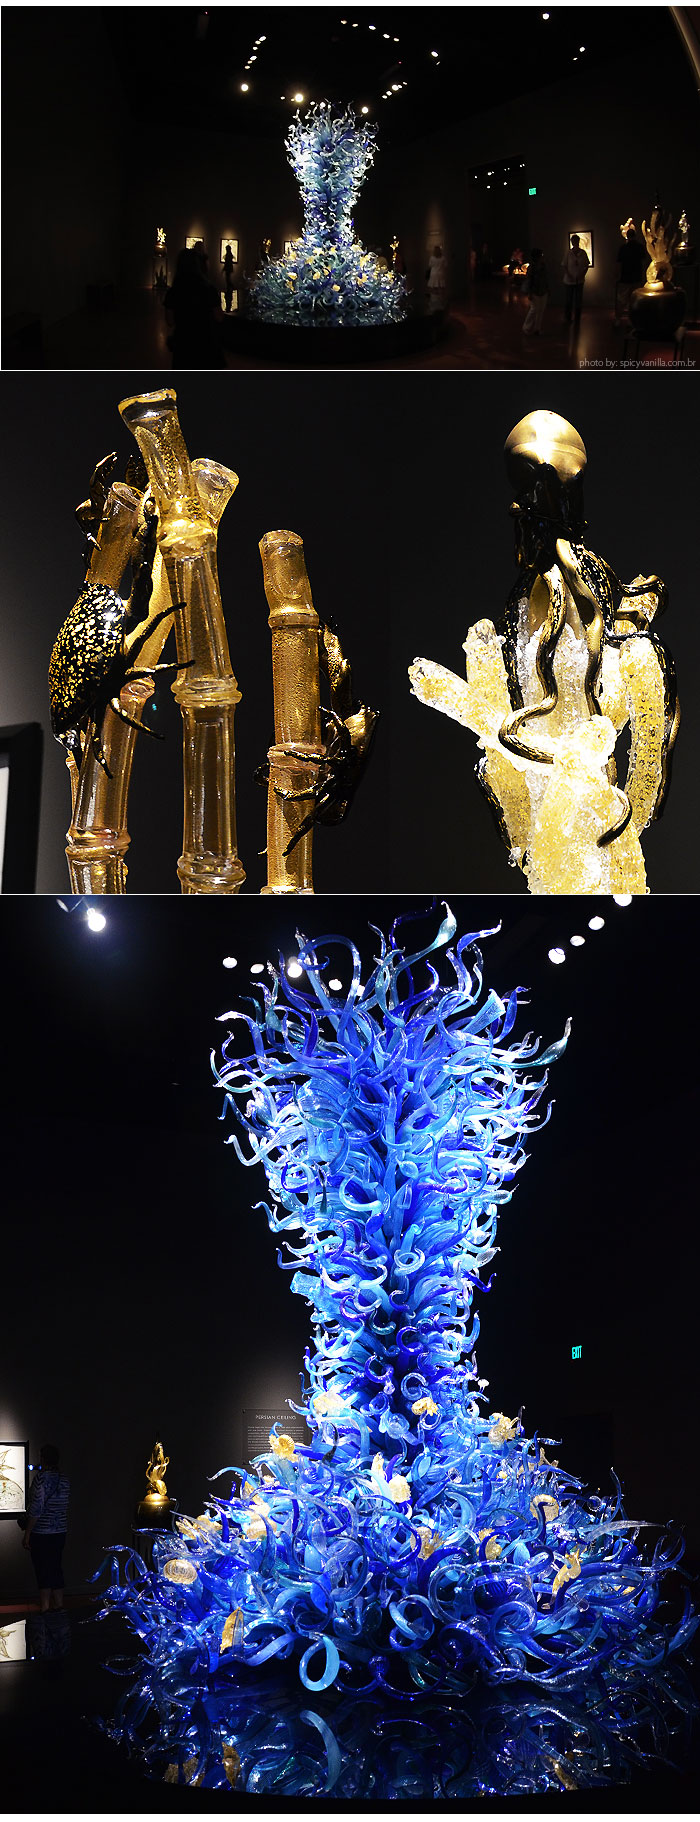 Chihuly_Garden_sea